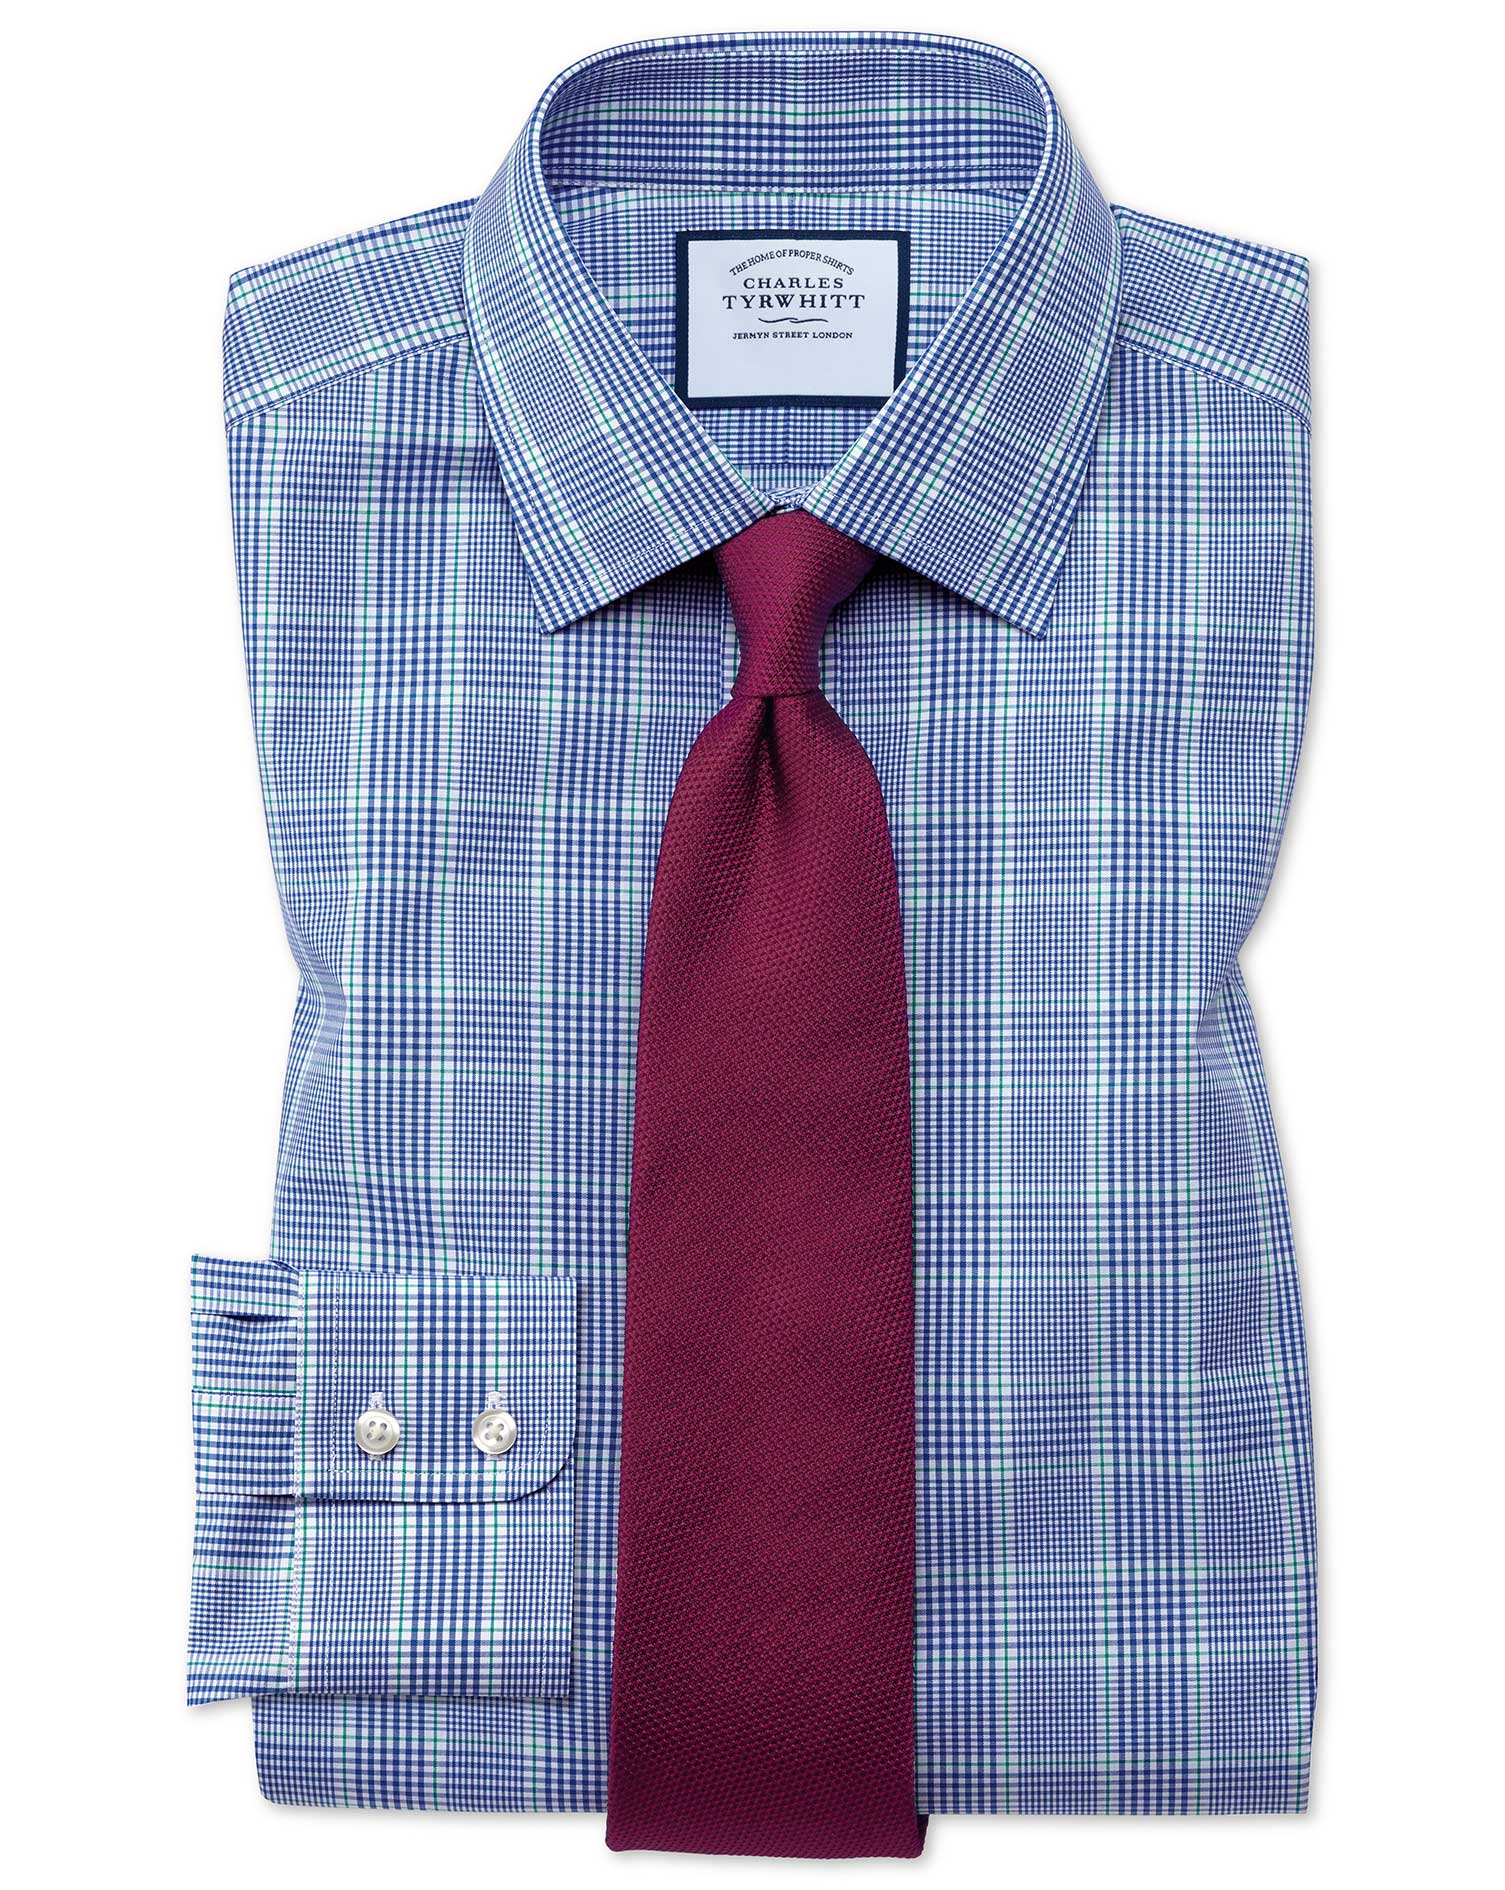 Slim Fit Prince Of Wales Check Blue and Green Cotton Formal Shirt Single Cuff Size 17.5/36 by Charles Tyrwhitt from Charles Tyrwhitt